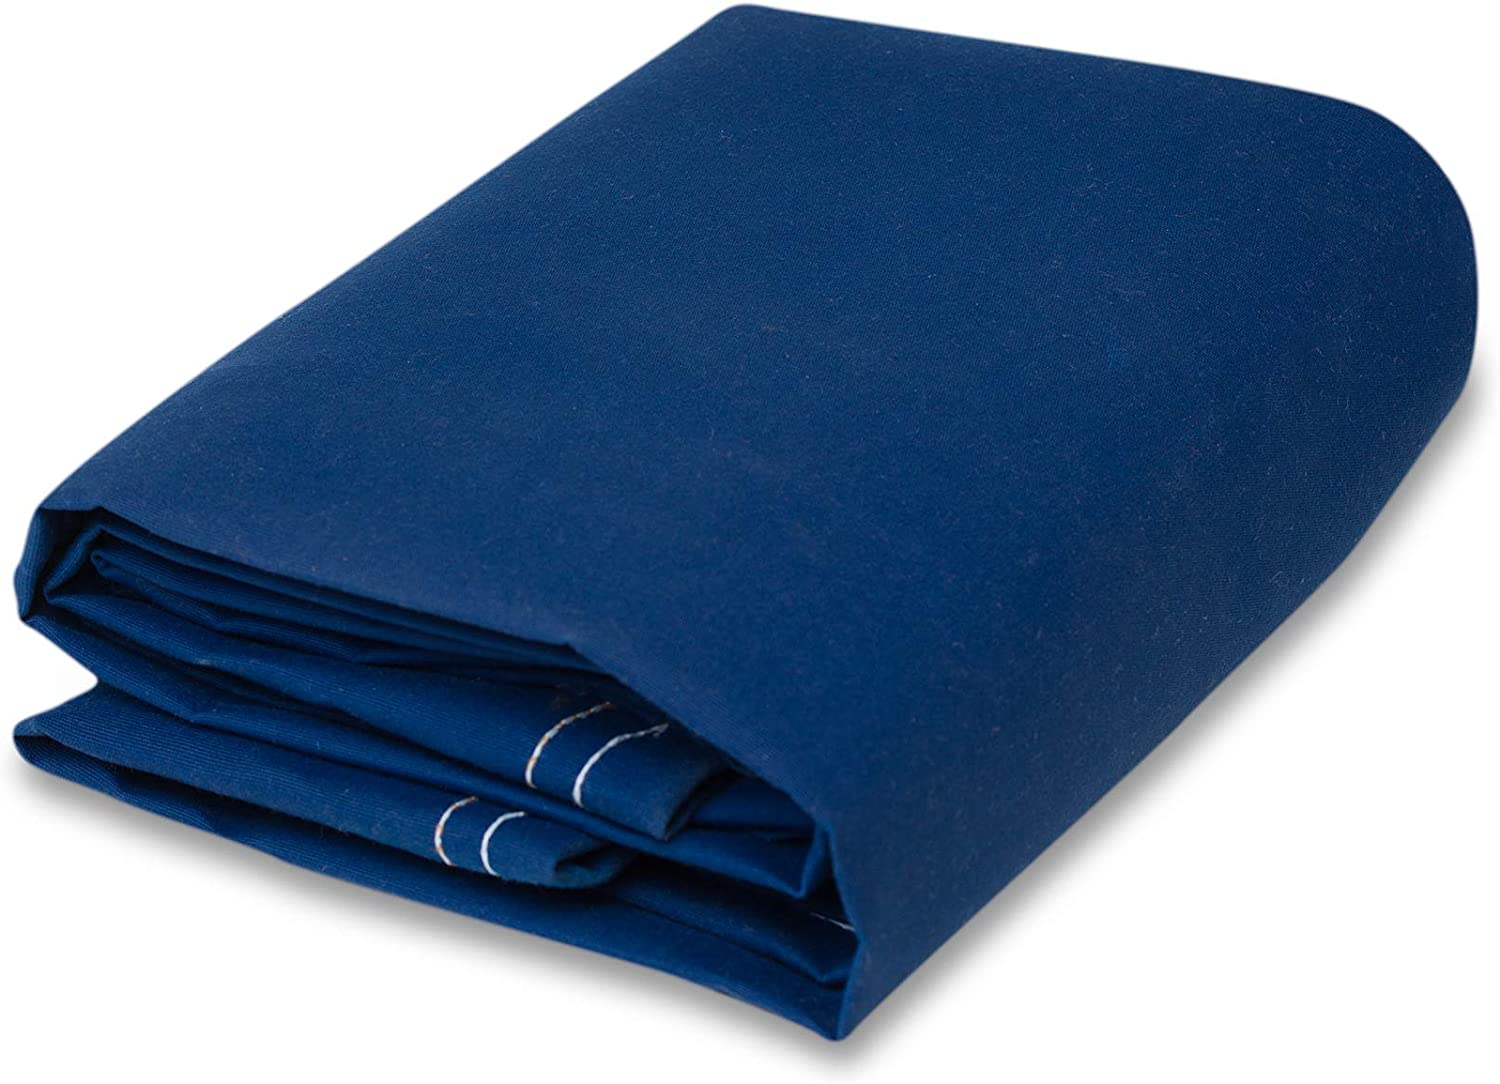 CCS CHICAGO CANVAS /& SUPPLY Iron Horse Canvas Tarp 5 feet x 7 feet, Blue